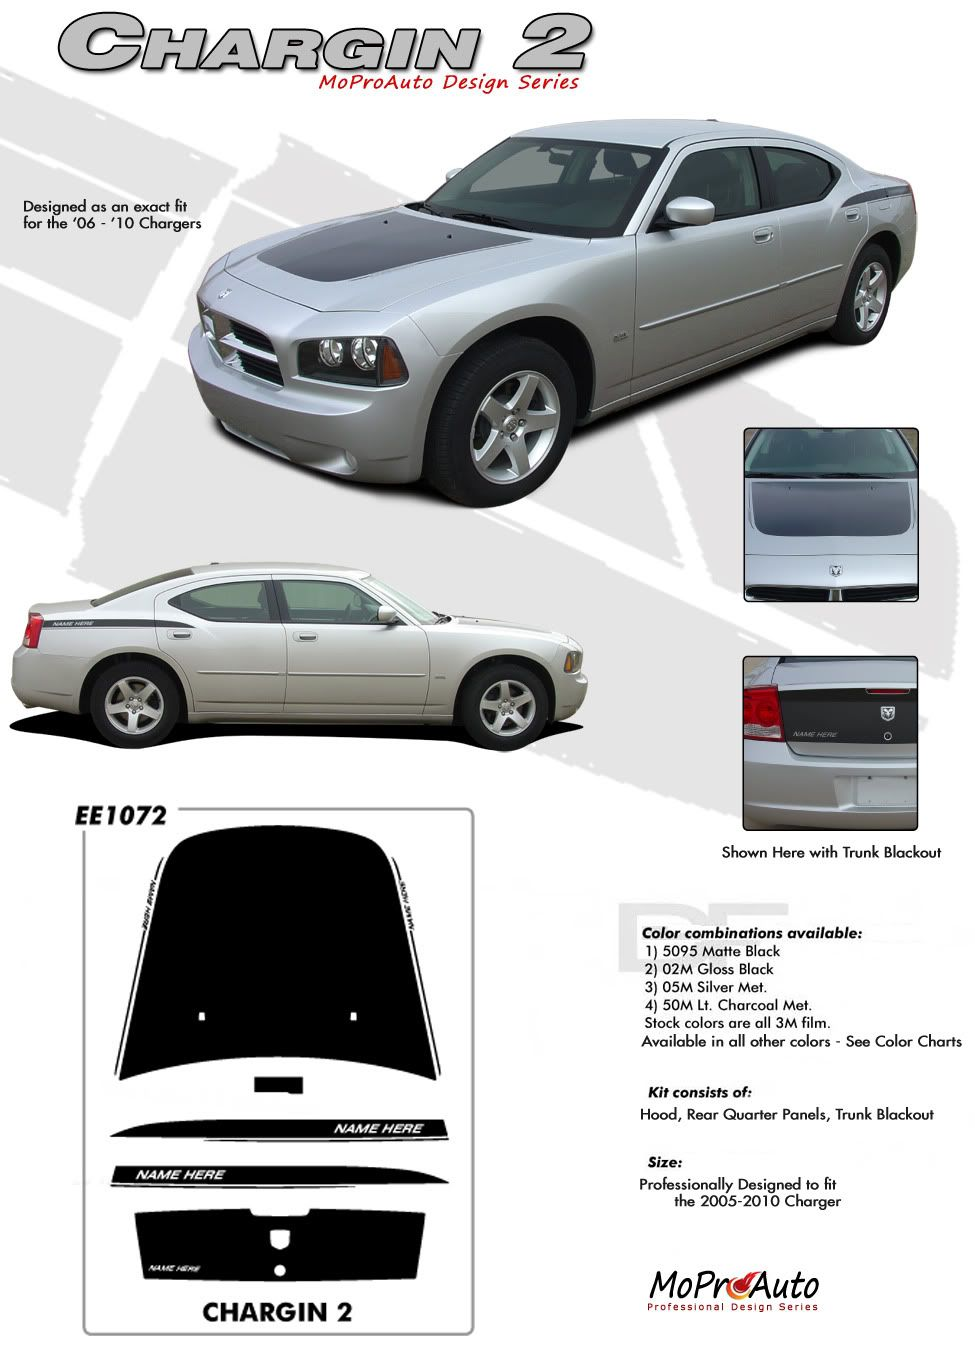 2006 Dodge Charger Decals : dodge, charger, decals, 2006-2010, Dodge, Charger, Vinyl, Graphics, Stripes, Decals